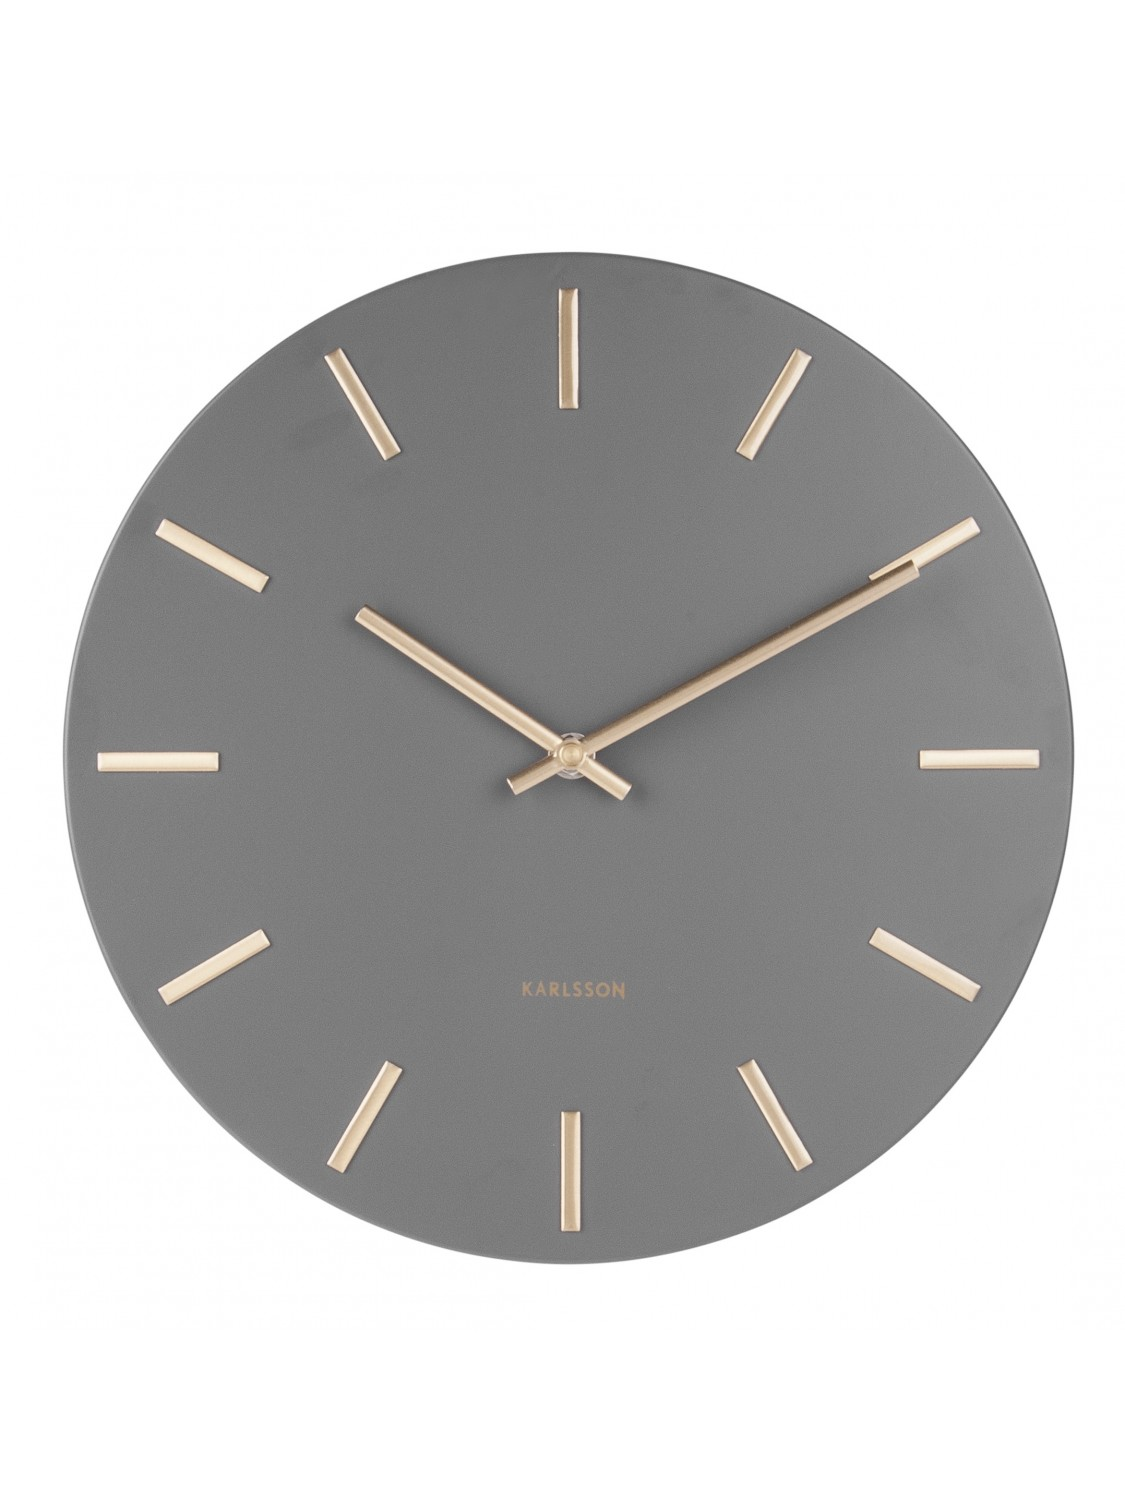 Karlsson Wall Clock Charm KA5821GY-363